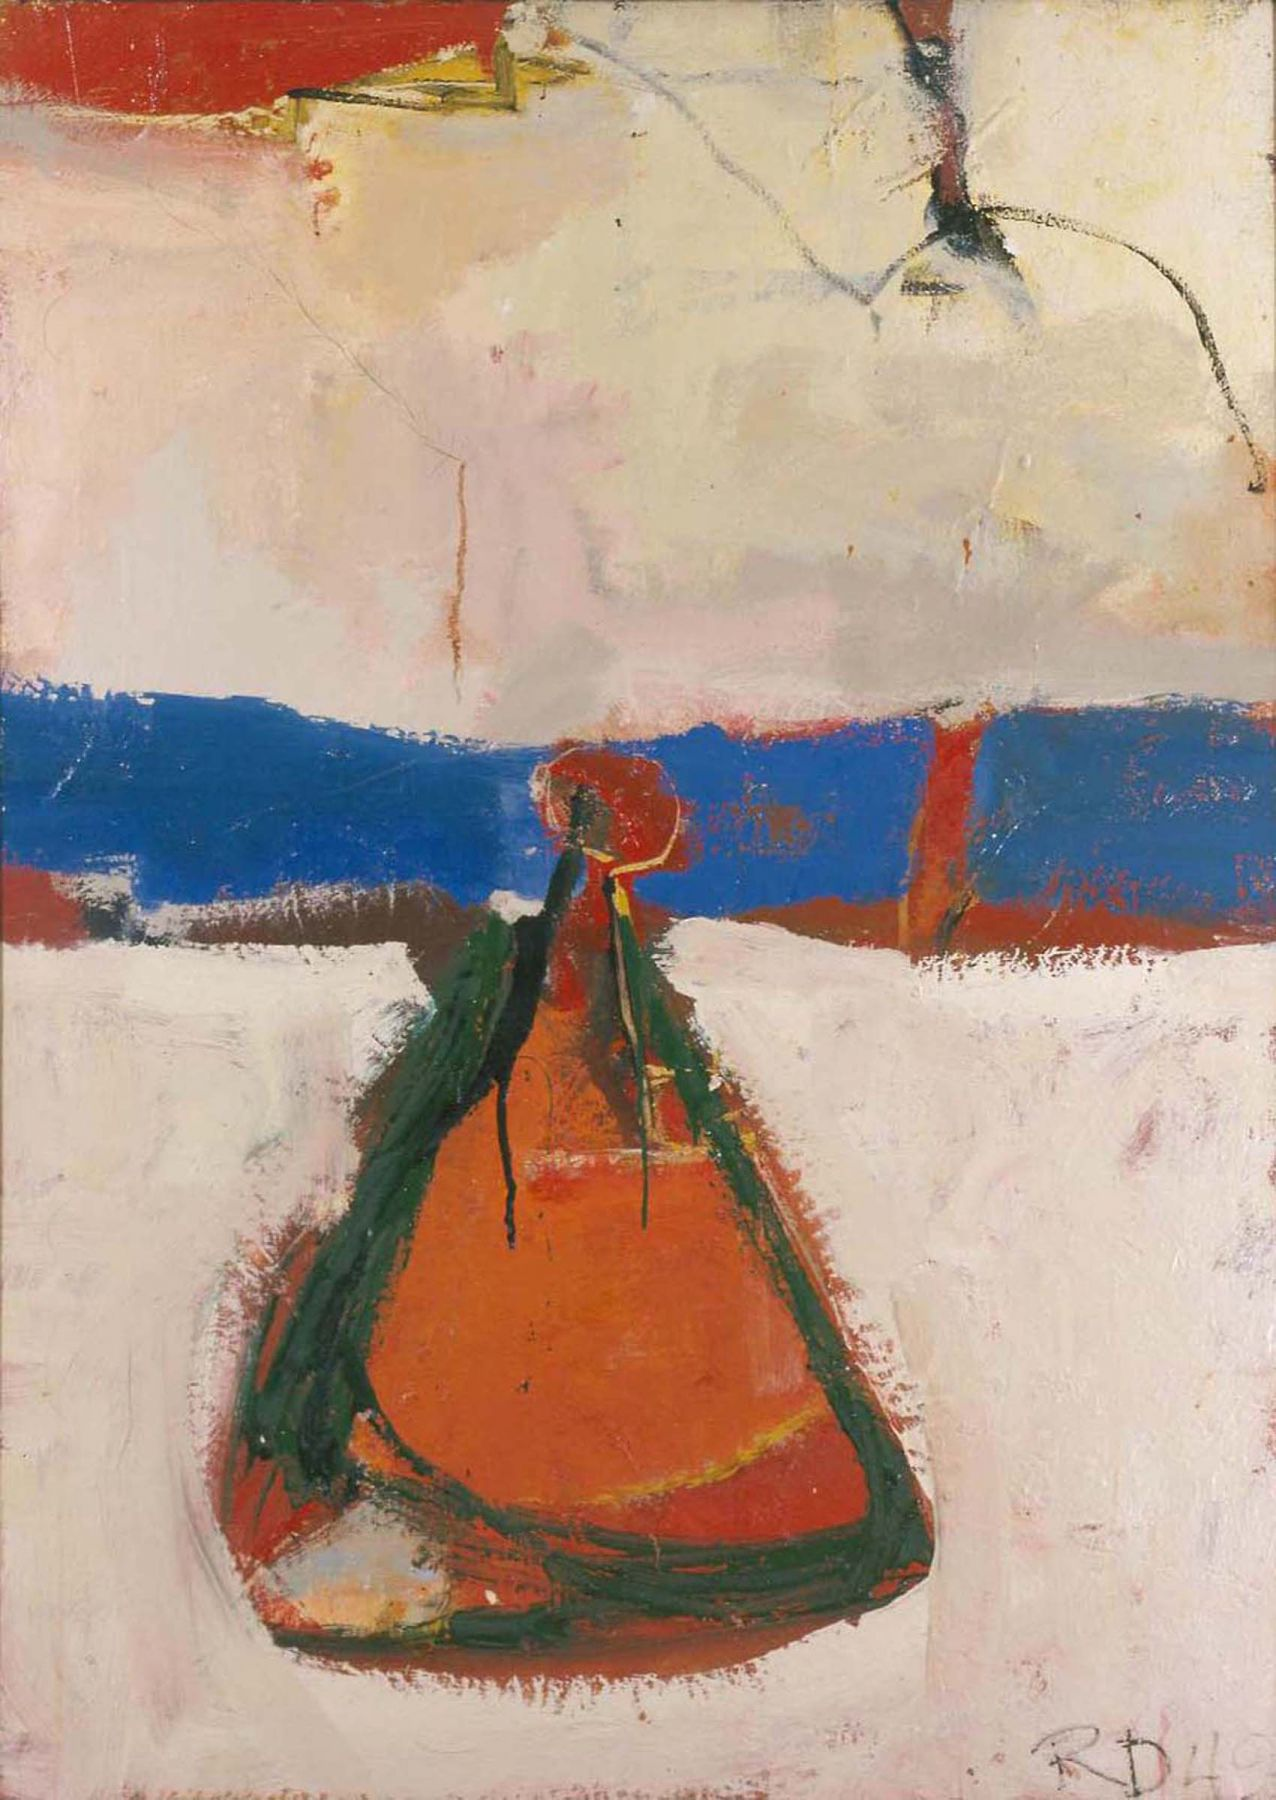 Richard Diebenkorn Untitled 1949 oil on canvas 46 x 32 7/8 inches